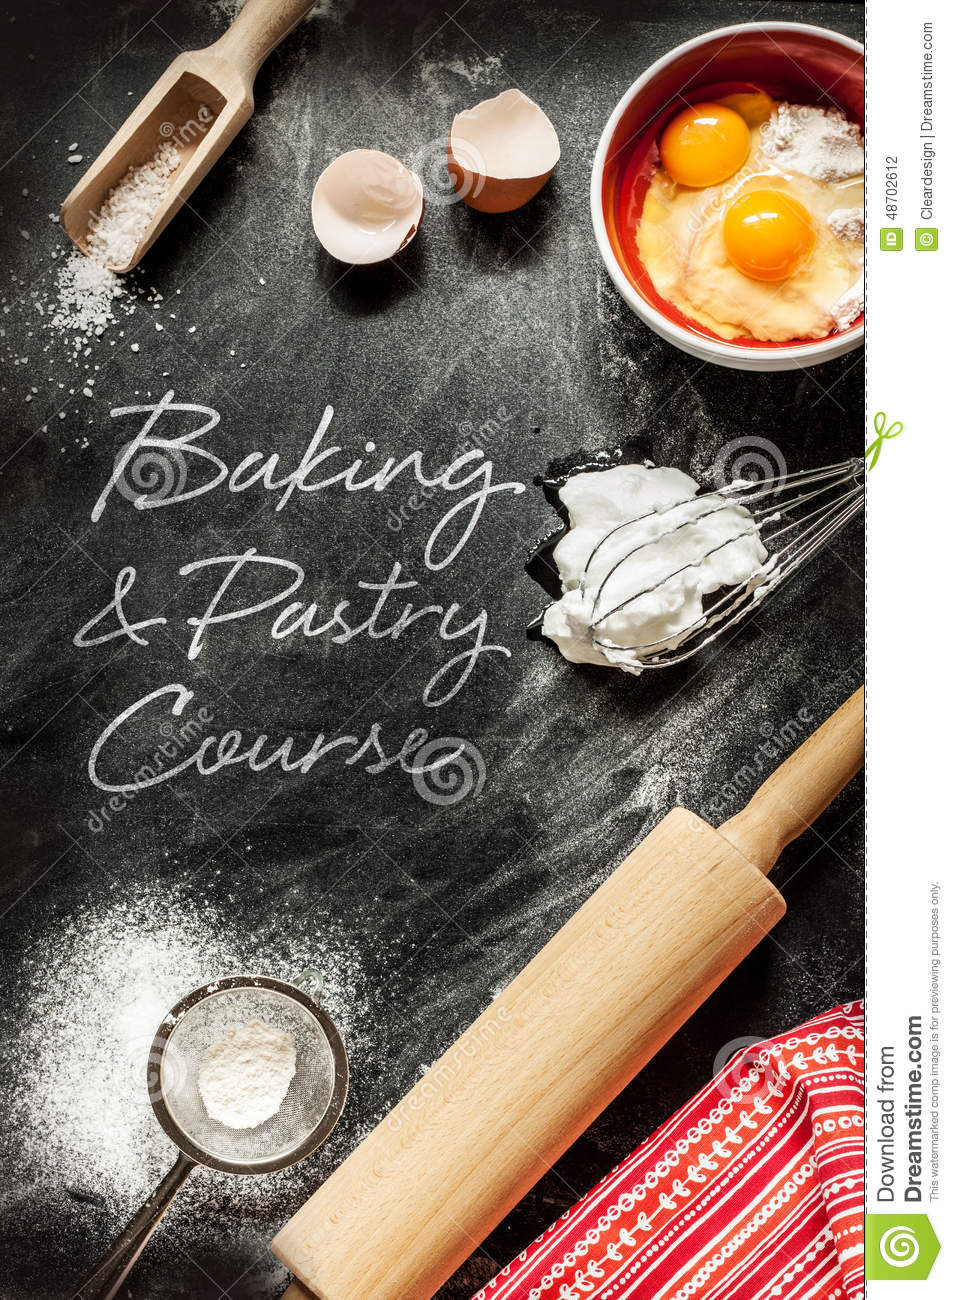 Cake Baking Business Course